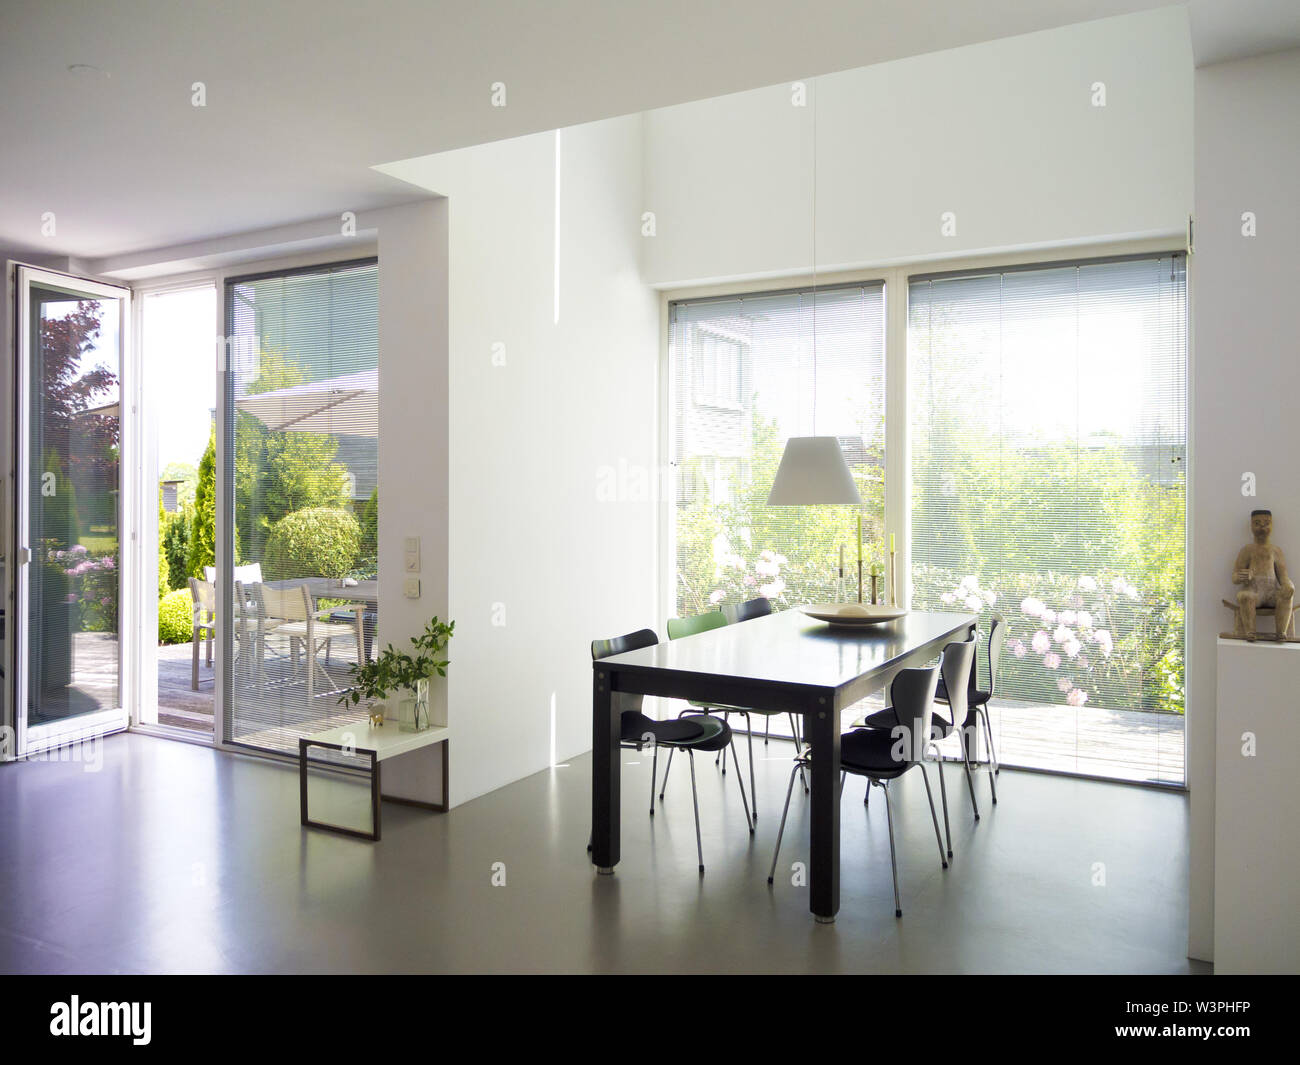 Modern Contemporary Dining Room Interior With Concrete Floor French Doors And Windows And A View To The Terrace And The Garden Stock Photo Alamy